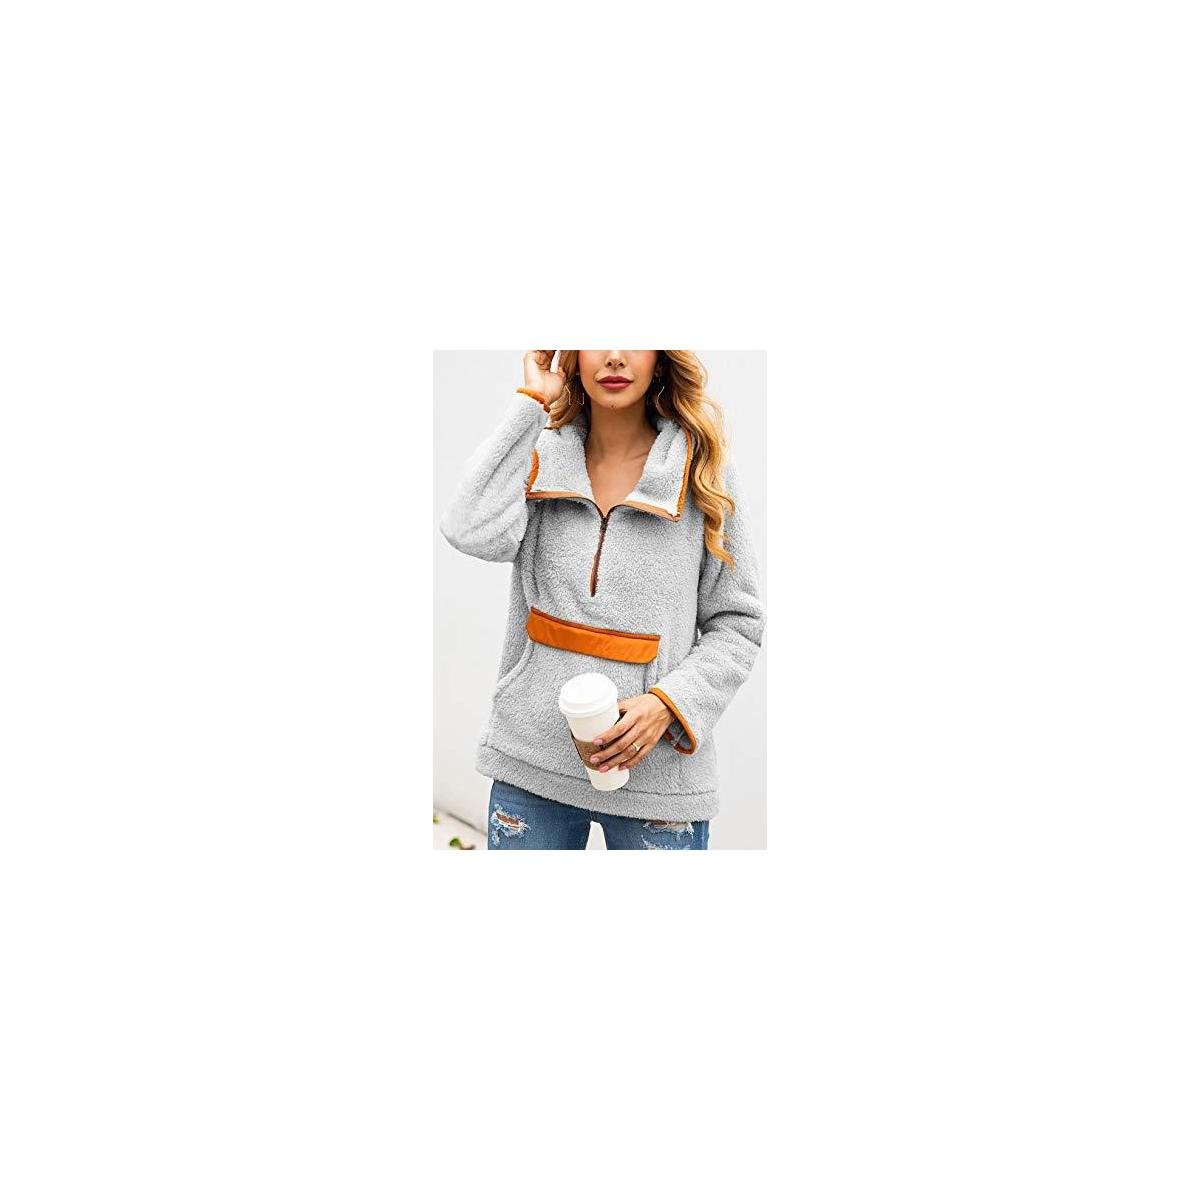 Women's Long Sleeve Lapel Hooded Fluffy Jacket Sherpa Pullover Haft Zipper Sweatshirt Fleece Outwear with Pocket